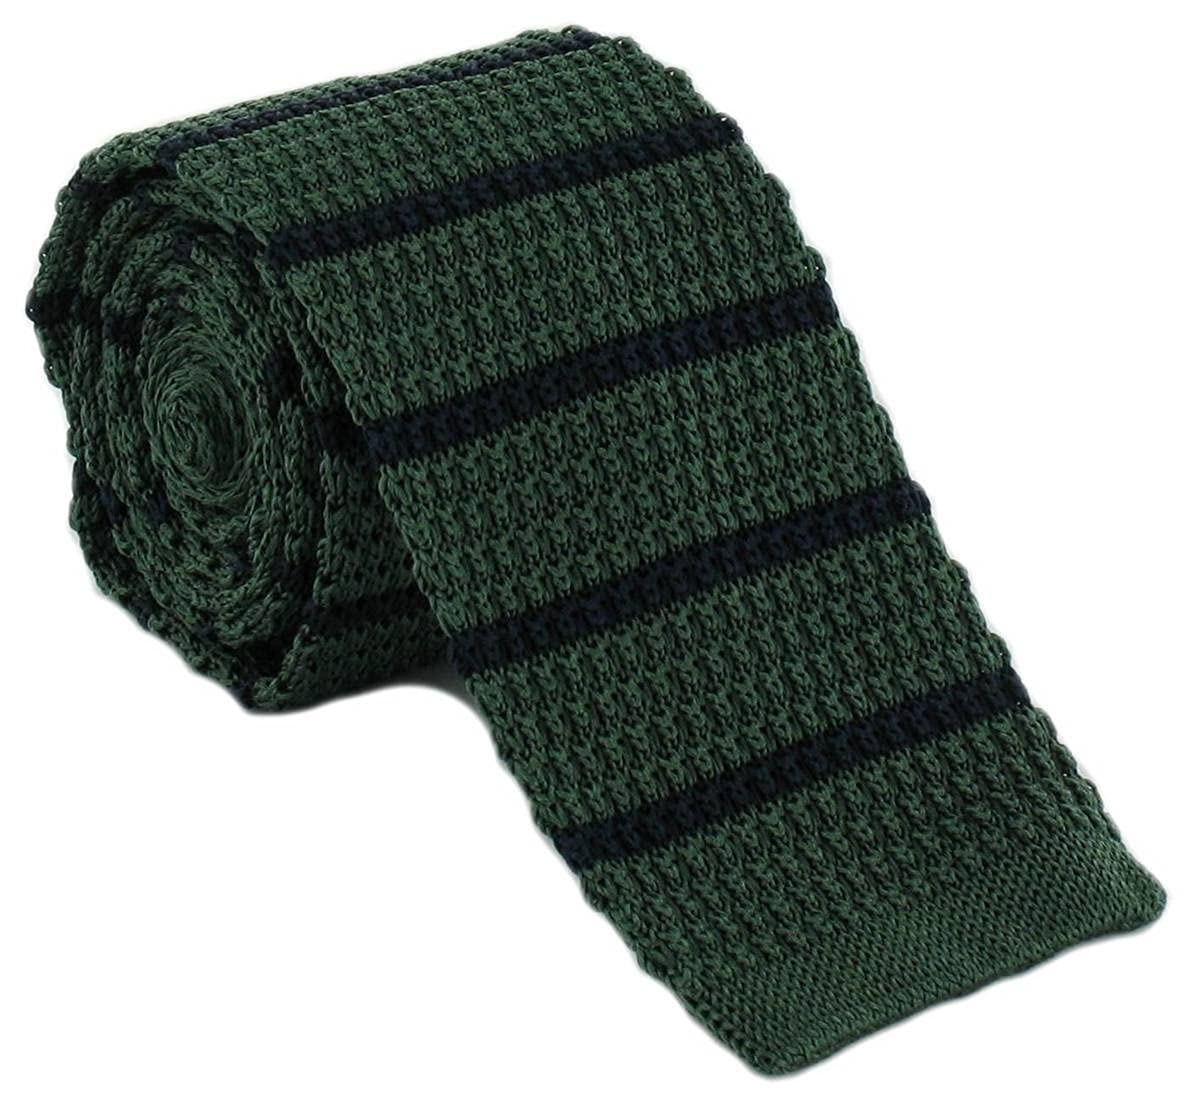 Green//Navy Michelsons of London Mens Silk Knitted Striped Skinny Tie